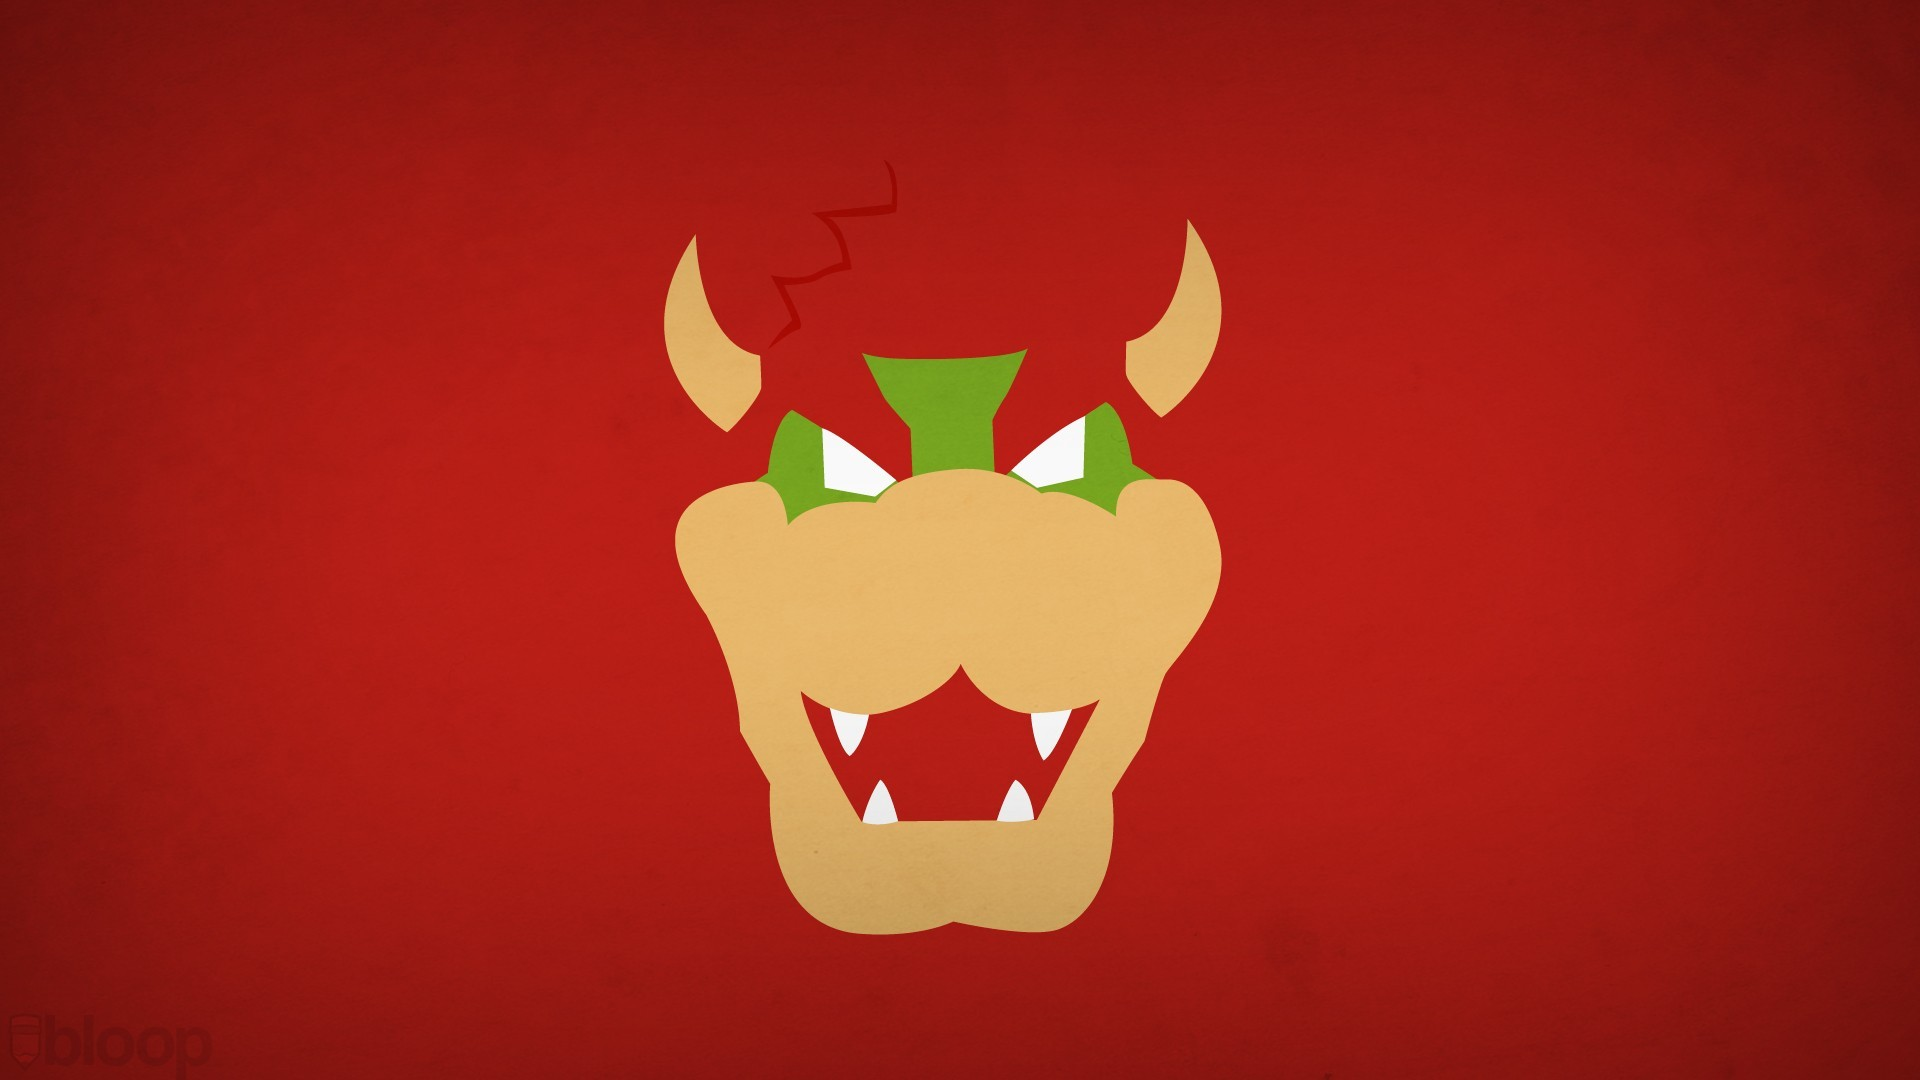 Blo0p Bowser Nintendo Red Background Super Mario Brothers